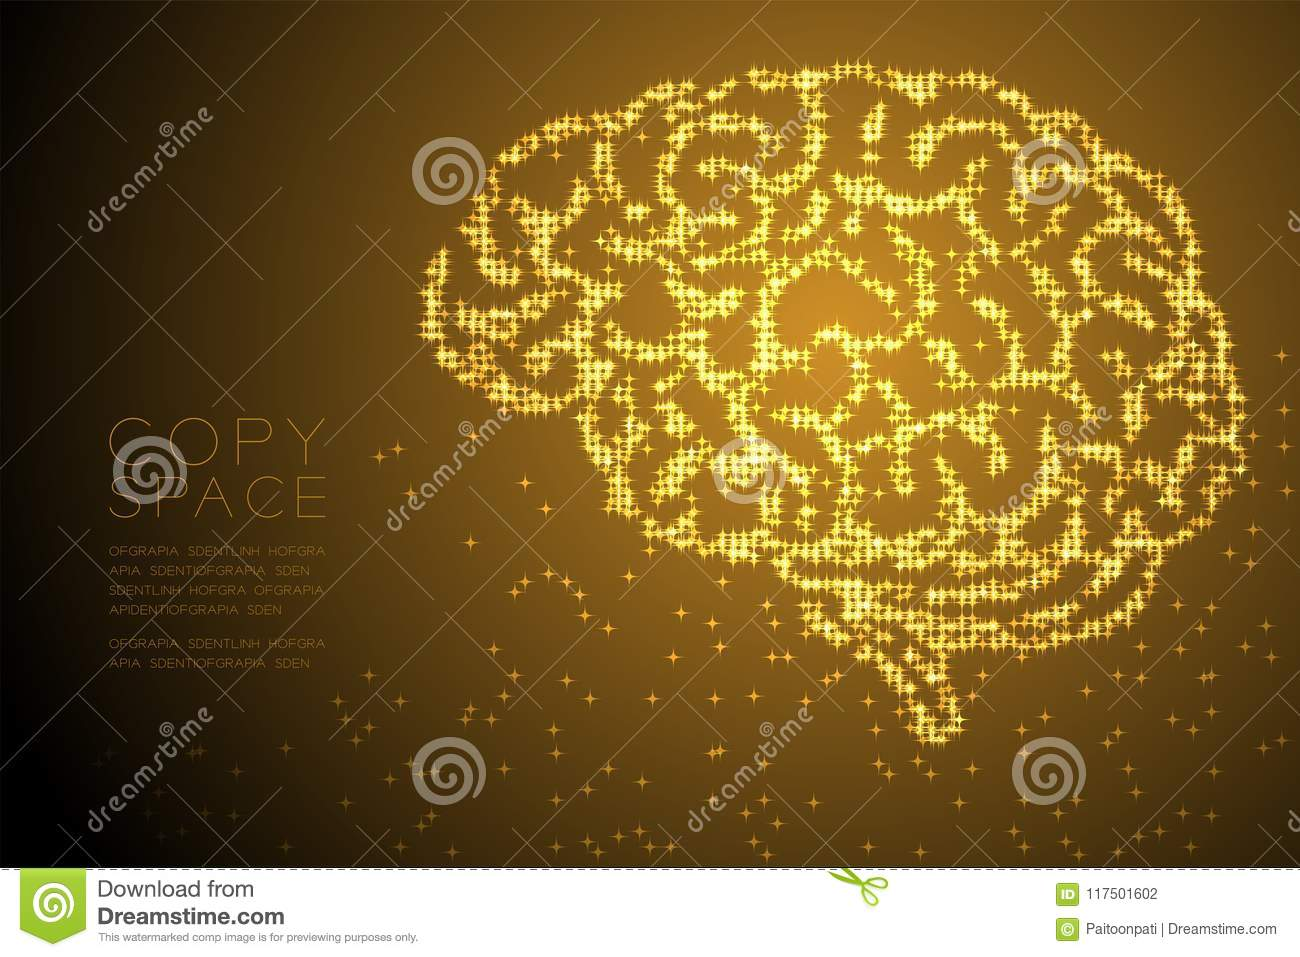 abstract shiny star pattern brain side view shape, creative science concept  design gold color illustration